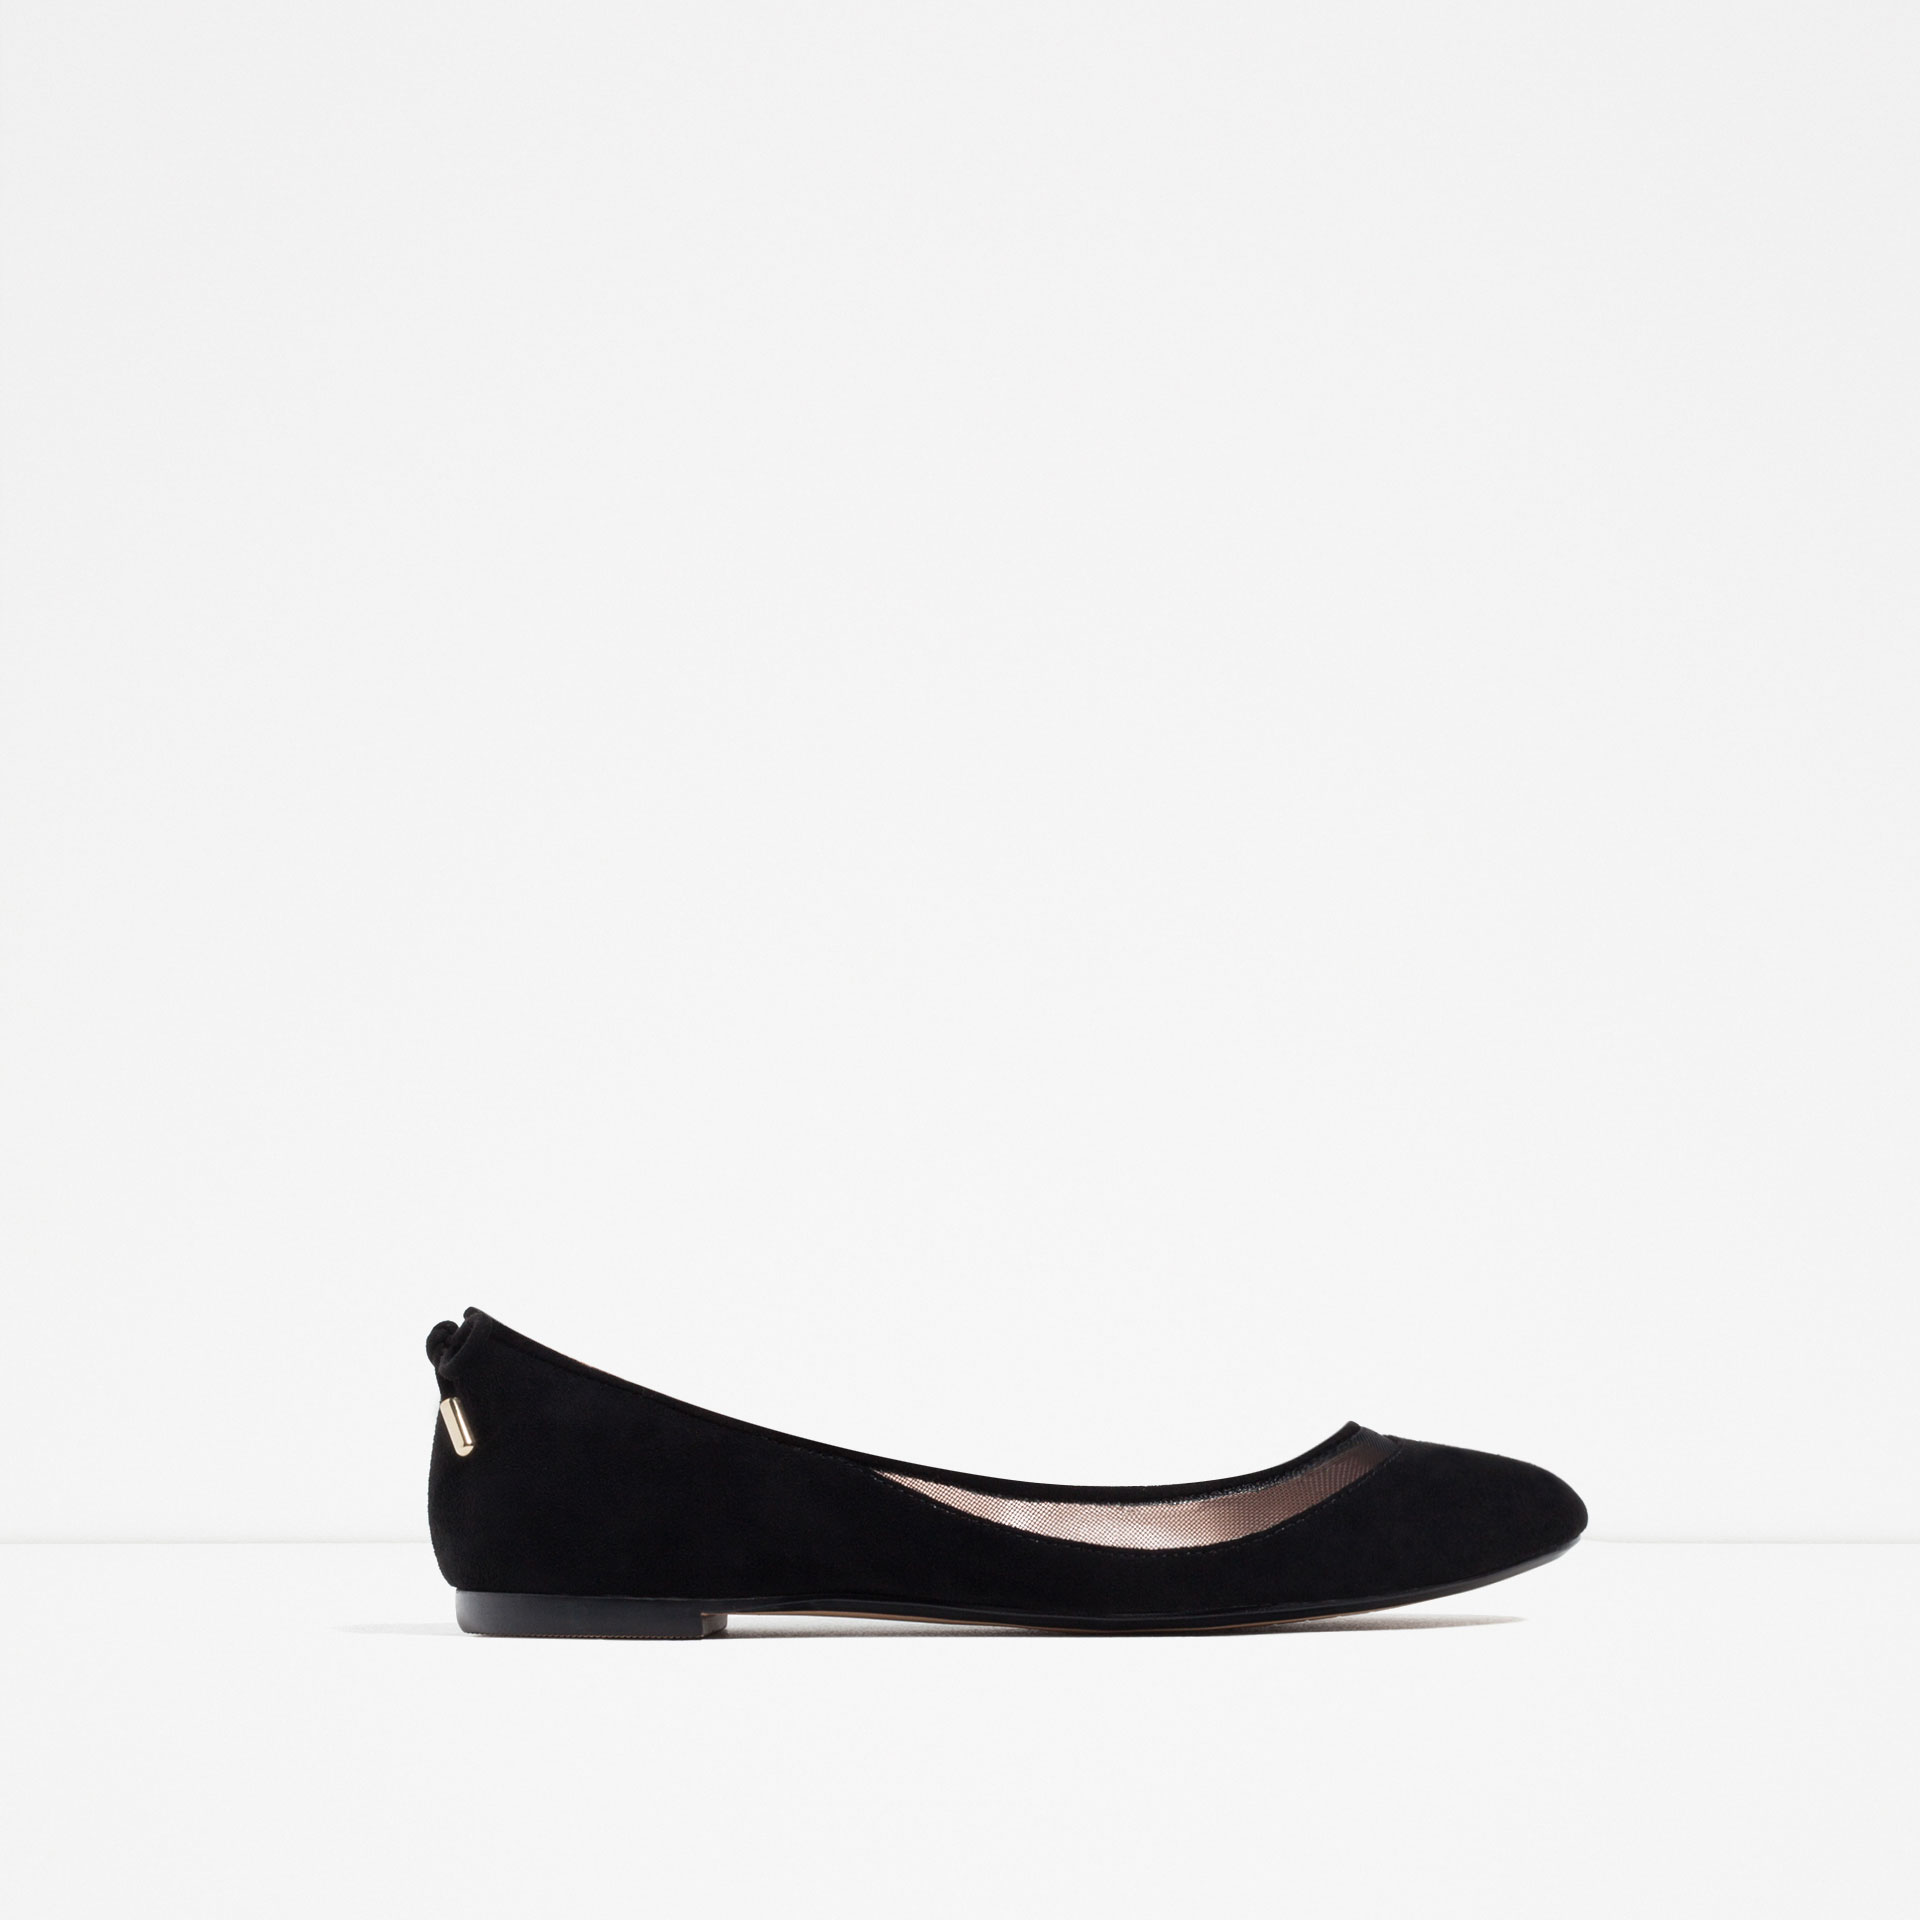 zara, black flats, shoes